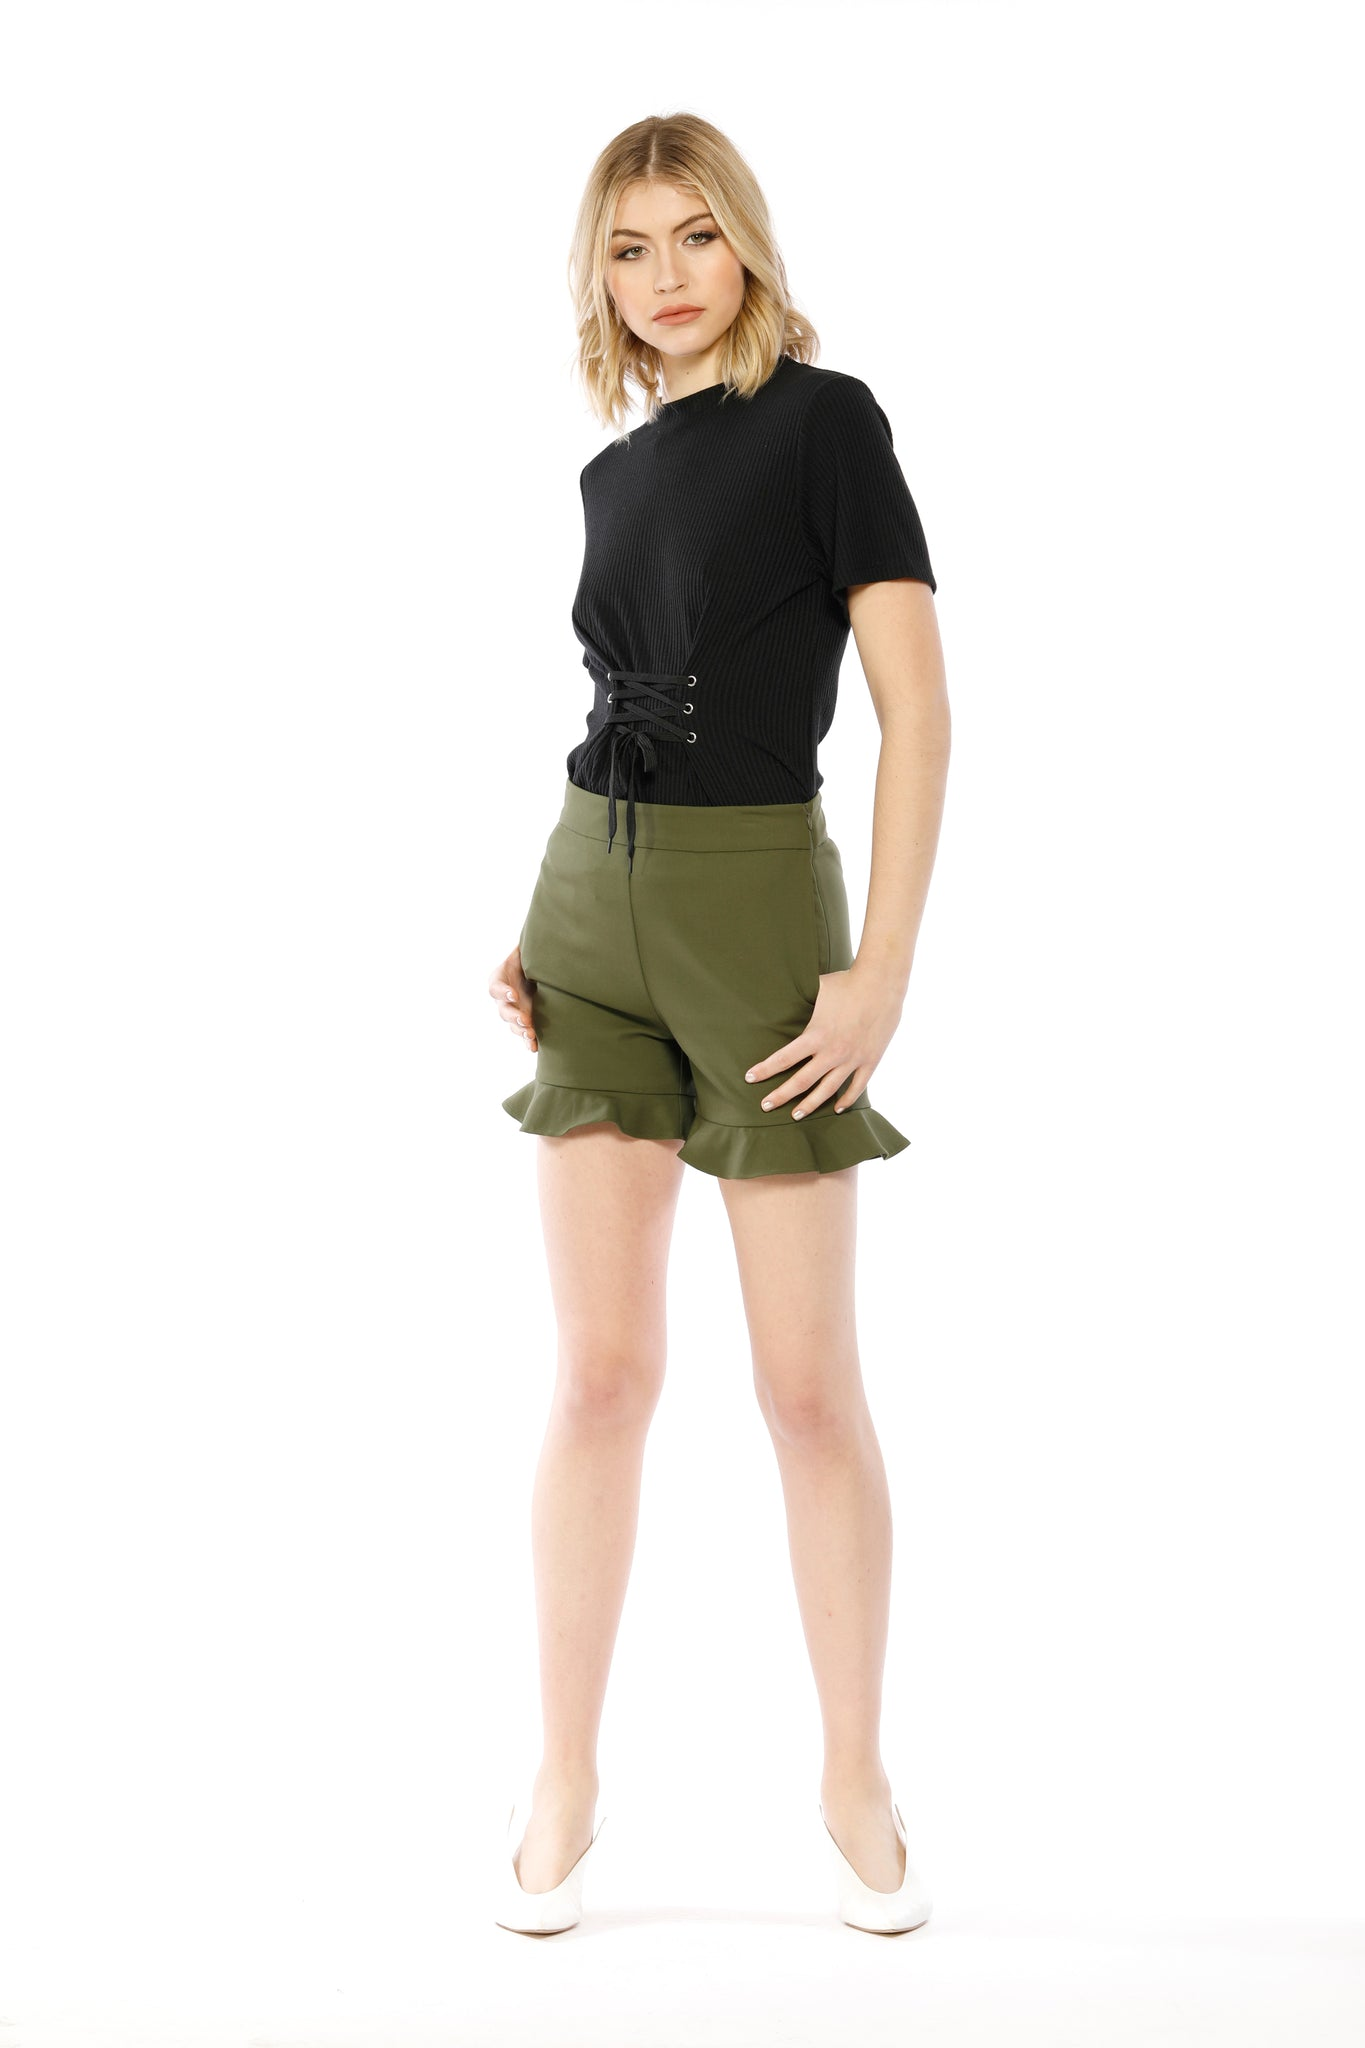 Front view (pose) of Lillian Short, sleek olive short shorts with flared, ruffled bottoms. Shell is 95% Cotton and 5% Spandex, Lining is 80% Polyester and 20% Cotton - and Machine-washable.